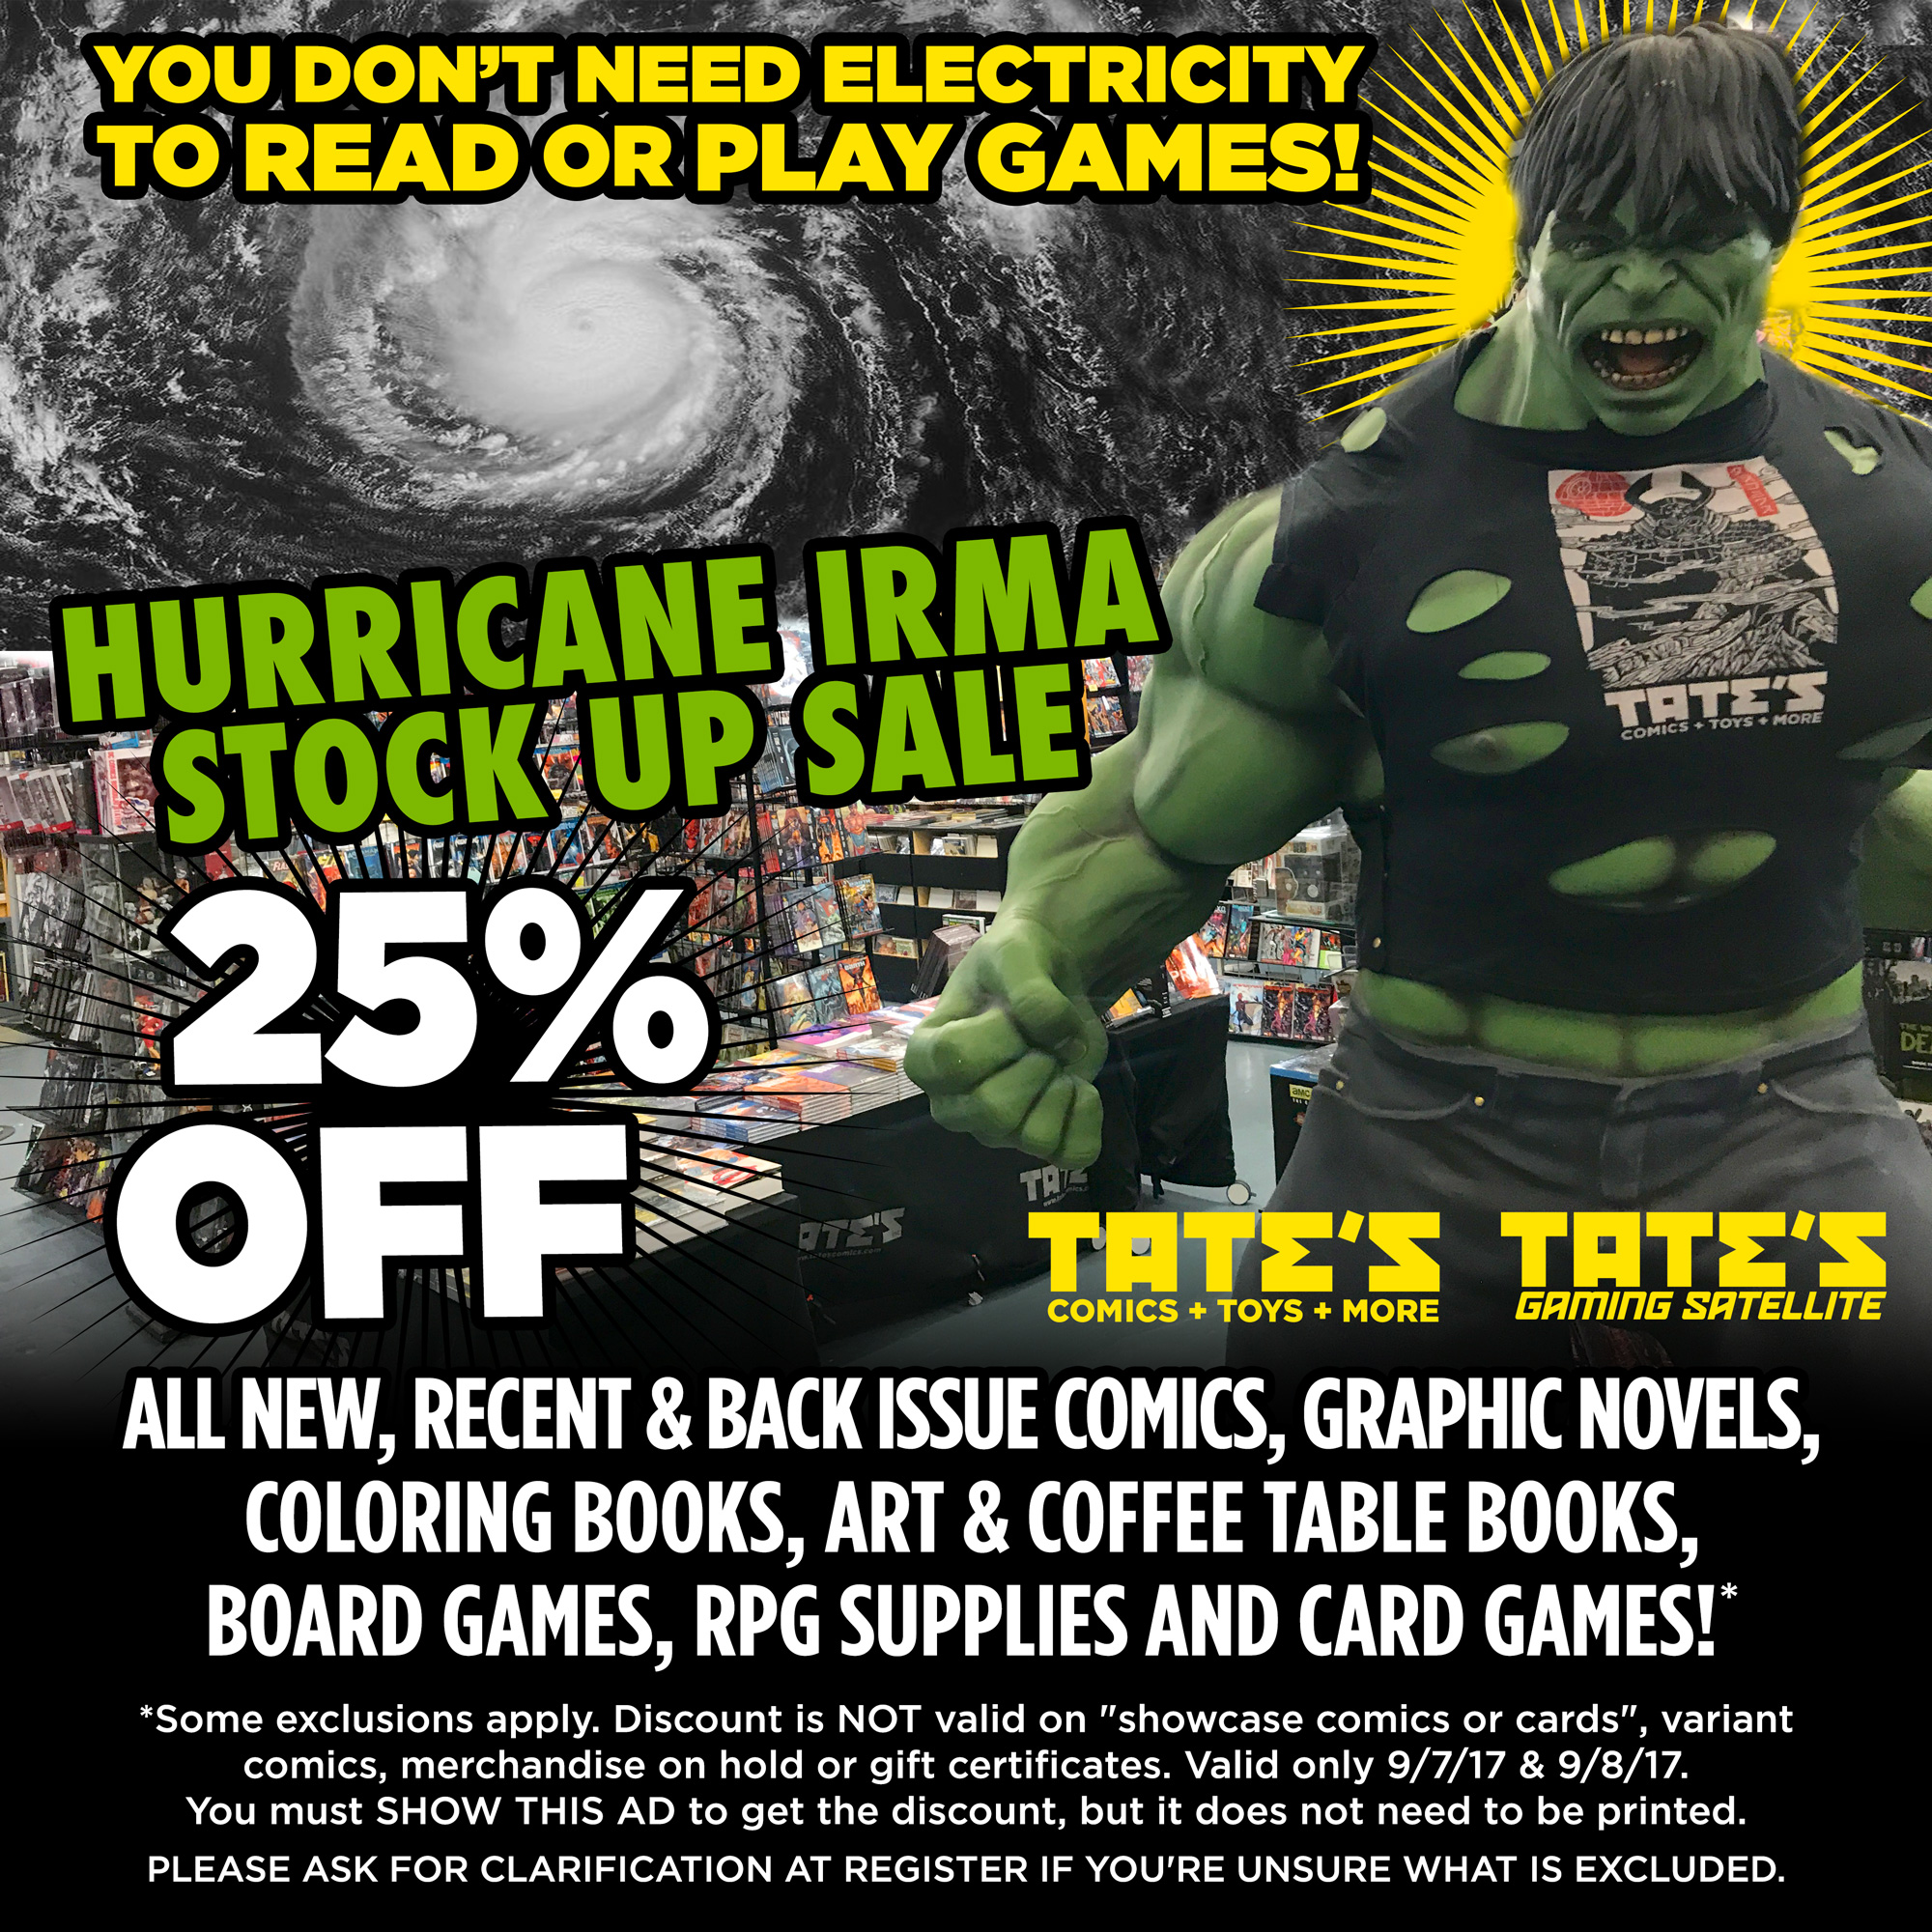 HurricaneIrmaSale_hulkgraphic